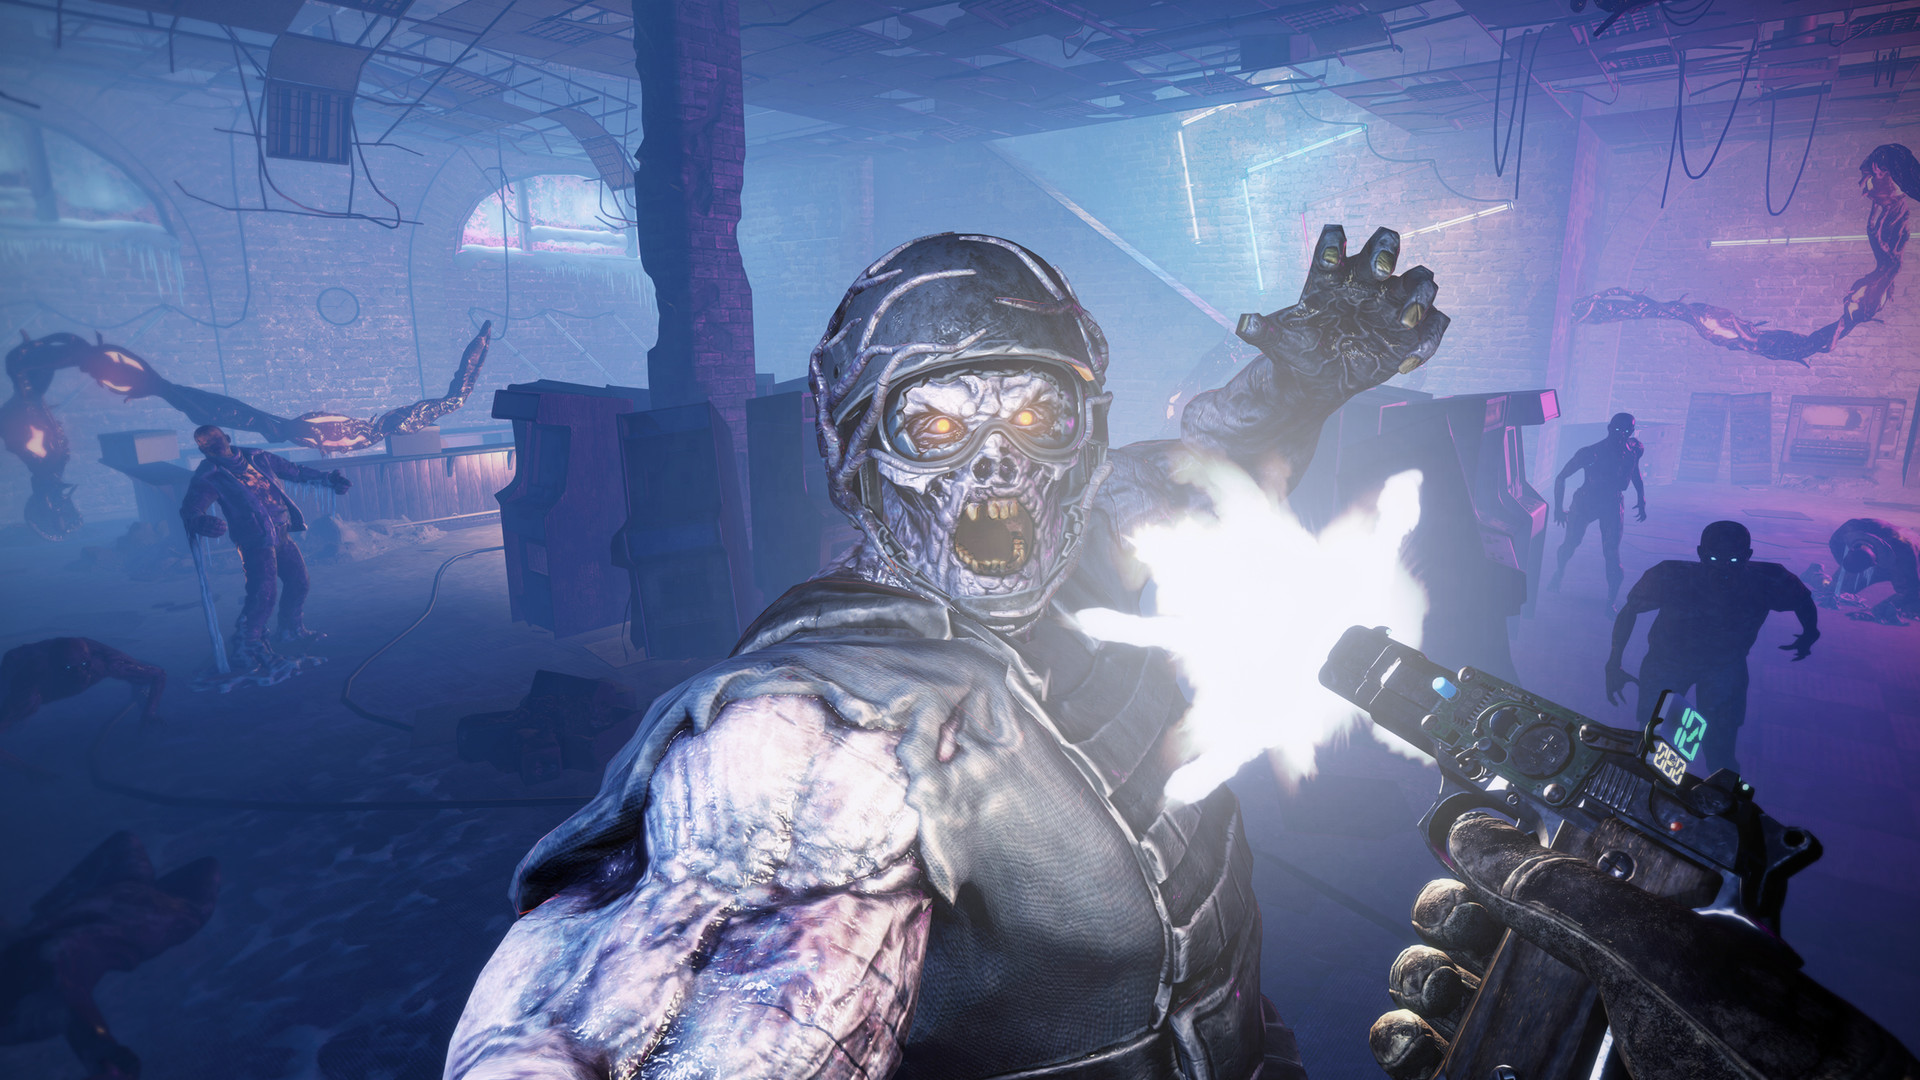 Gets Your First Look at the Zombie VR Shooter, After the Fall